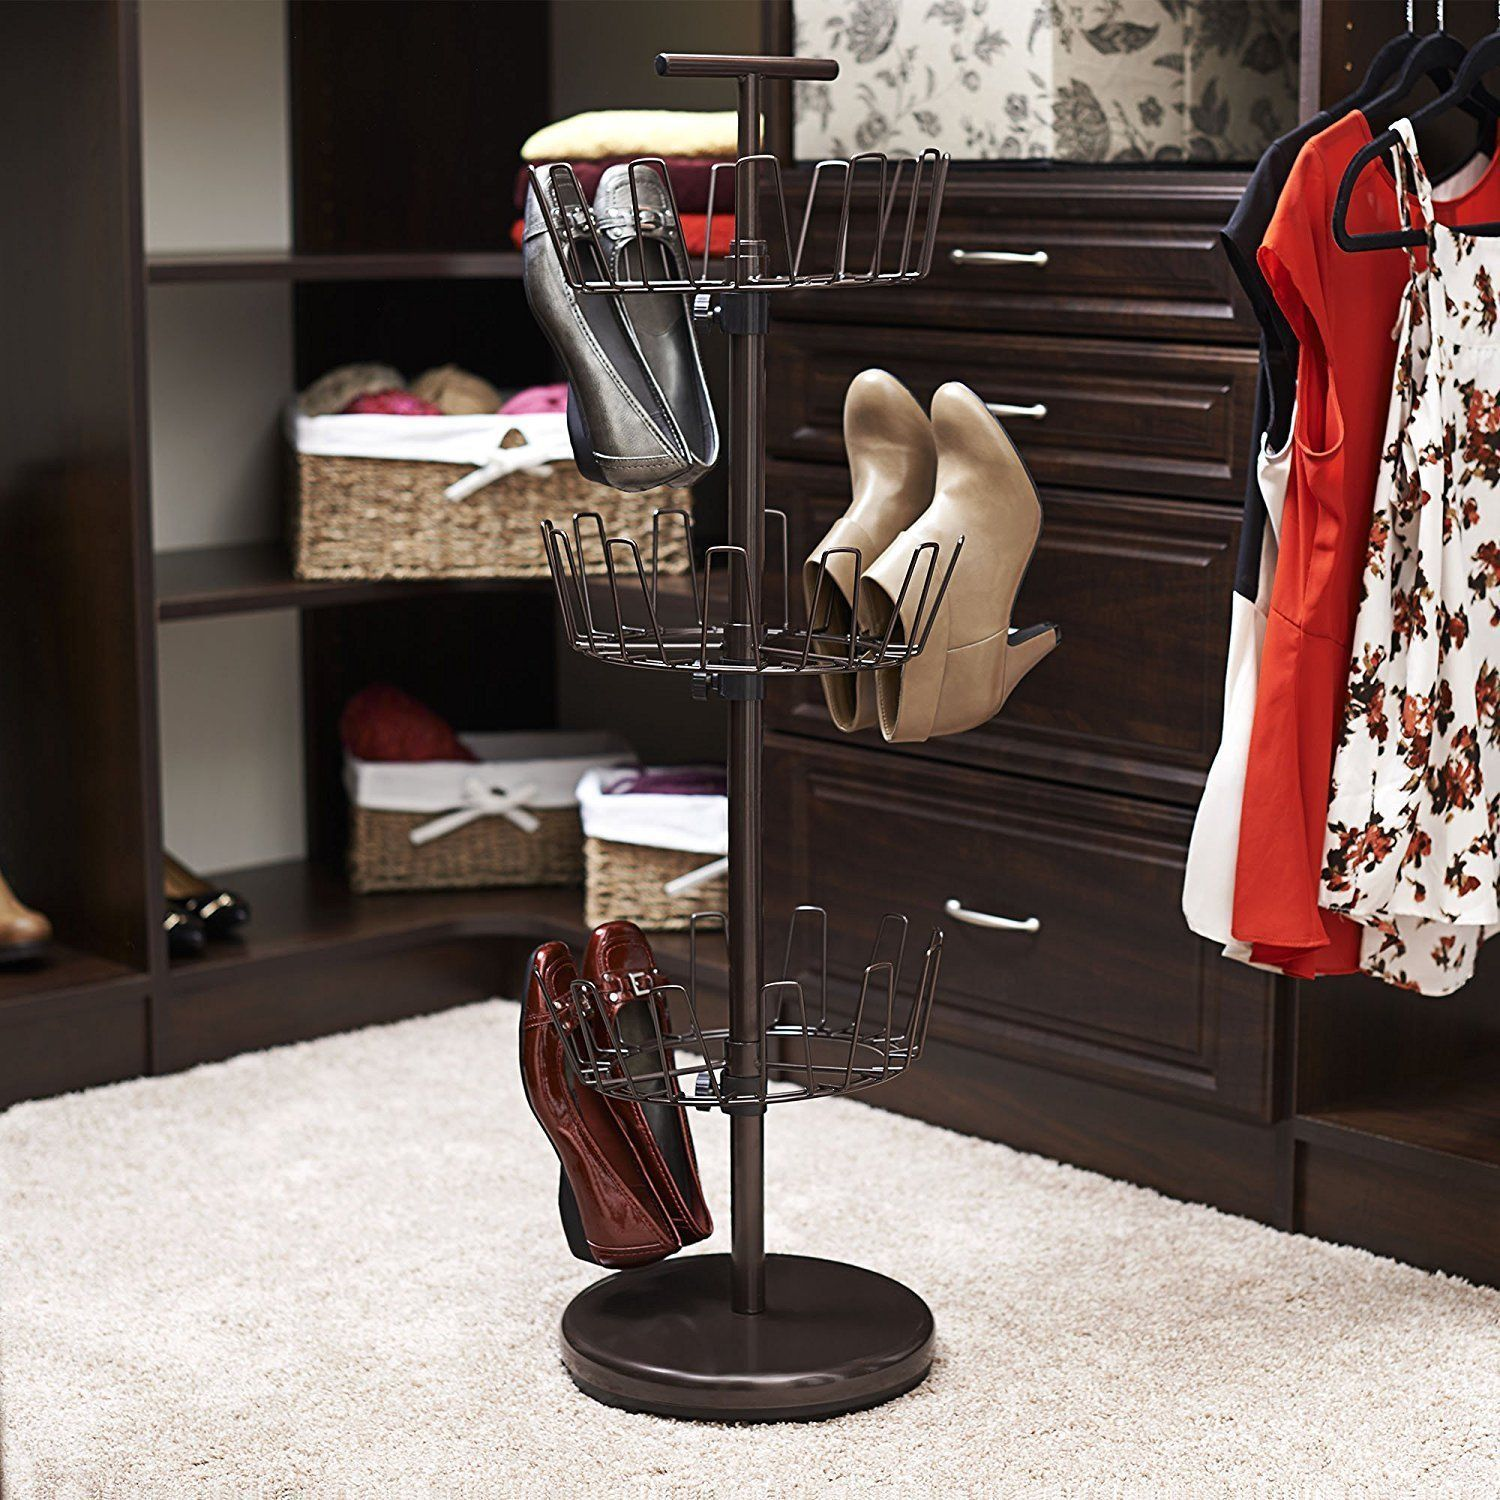 pair free standing rotating shoe rack boot heel storage display